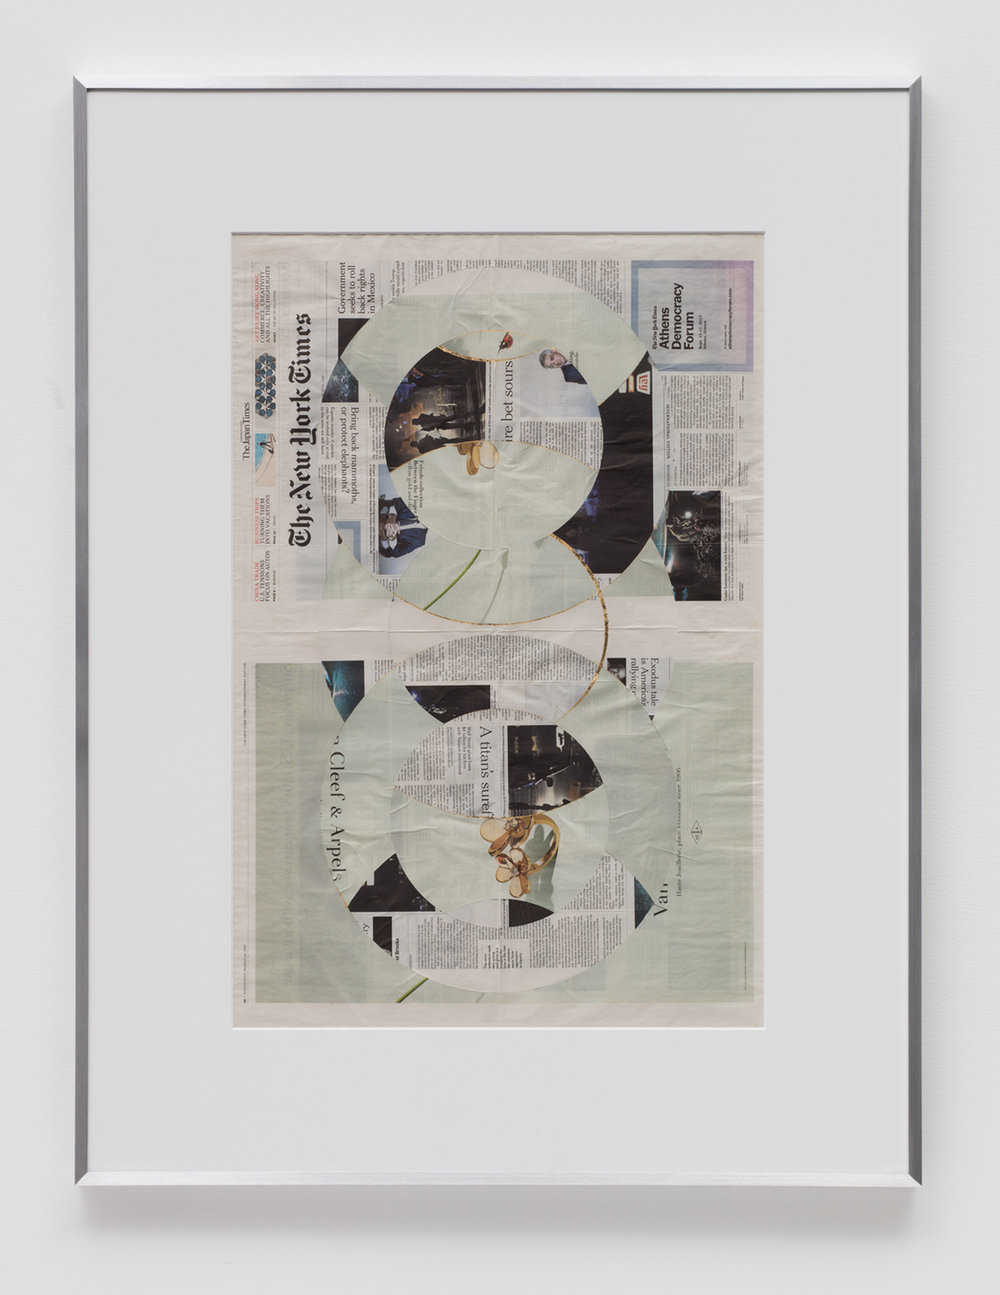 Blind Collage (Two 180º Rotations, The New York Times International Edition Distributed with The Japan Times, Wednesday, March 22, 2017)   2017  Newspaper, tape, and 22 karat gold leaf  43 5/8 x 33 1/8 inches   Blind Collages, 2017–    Transparencies, 2017    Equivalents, 2018